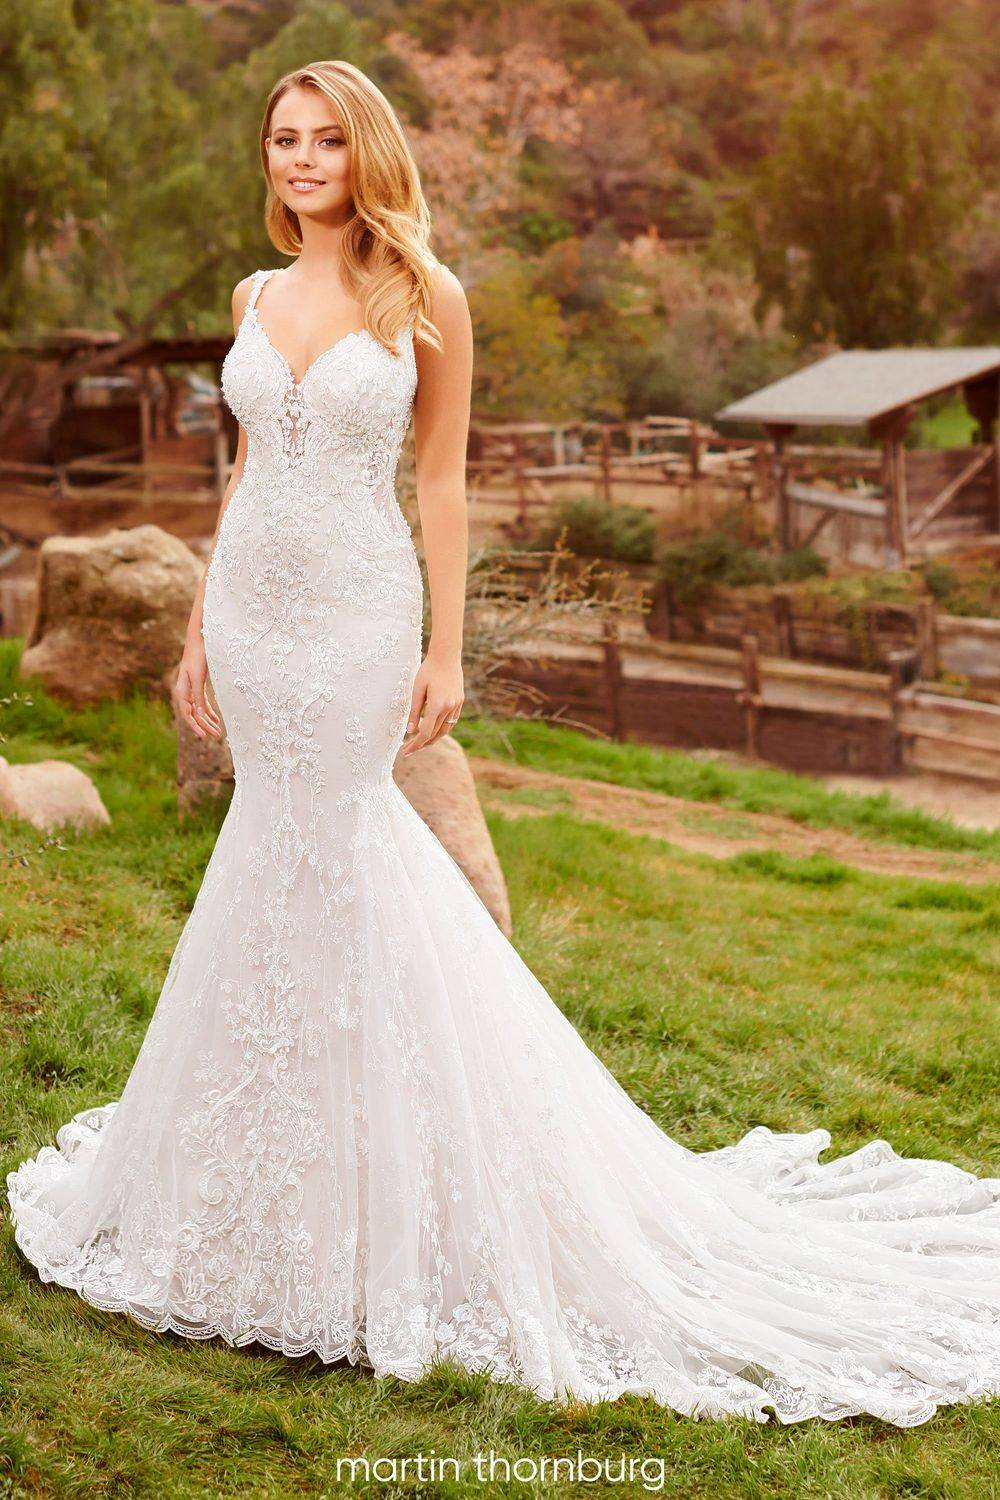 Fitted, sexy wedding dress, lace wedding dress with straps, sweetheart neckline, long train, sparkly wedding dress, dipped back wedding dress